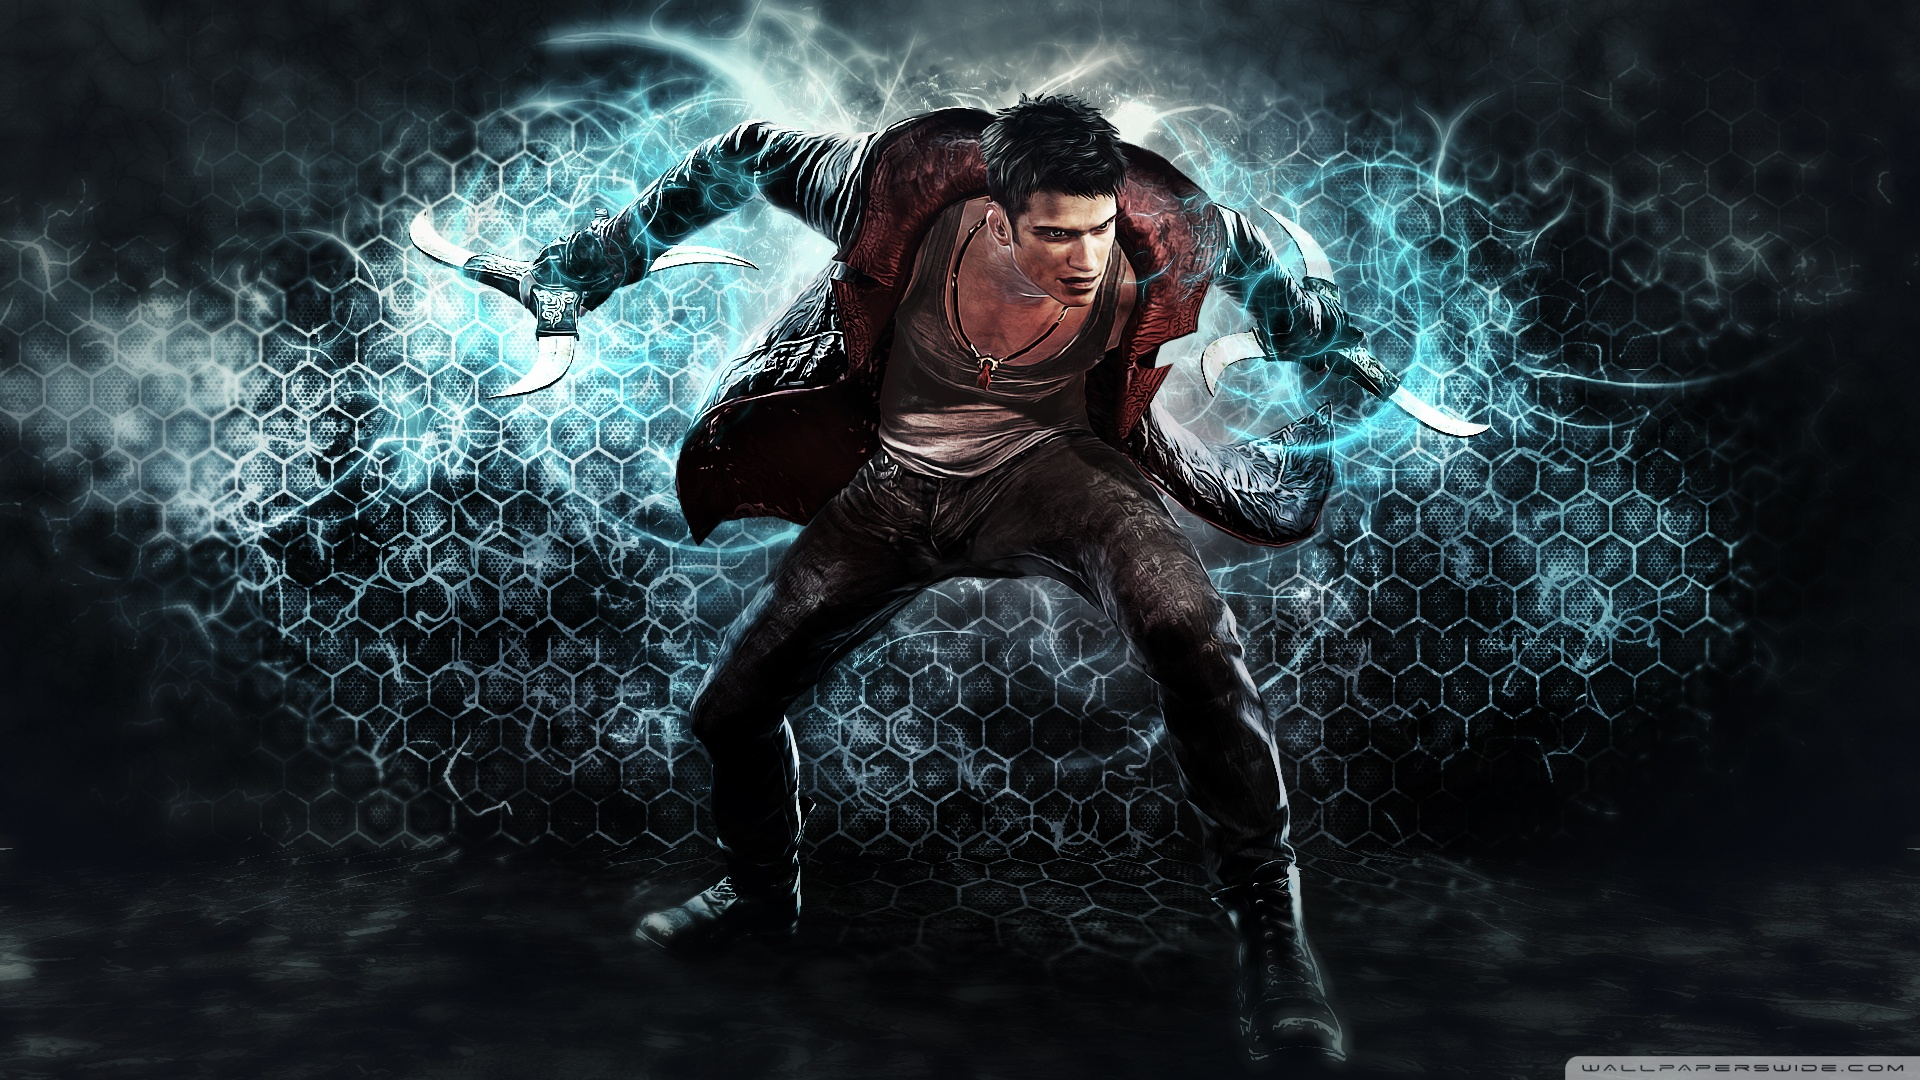 Devil May Cry Wallpaper 19201080 Hd Devil May Cry Hd